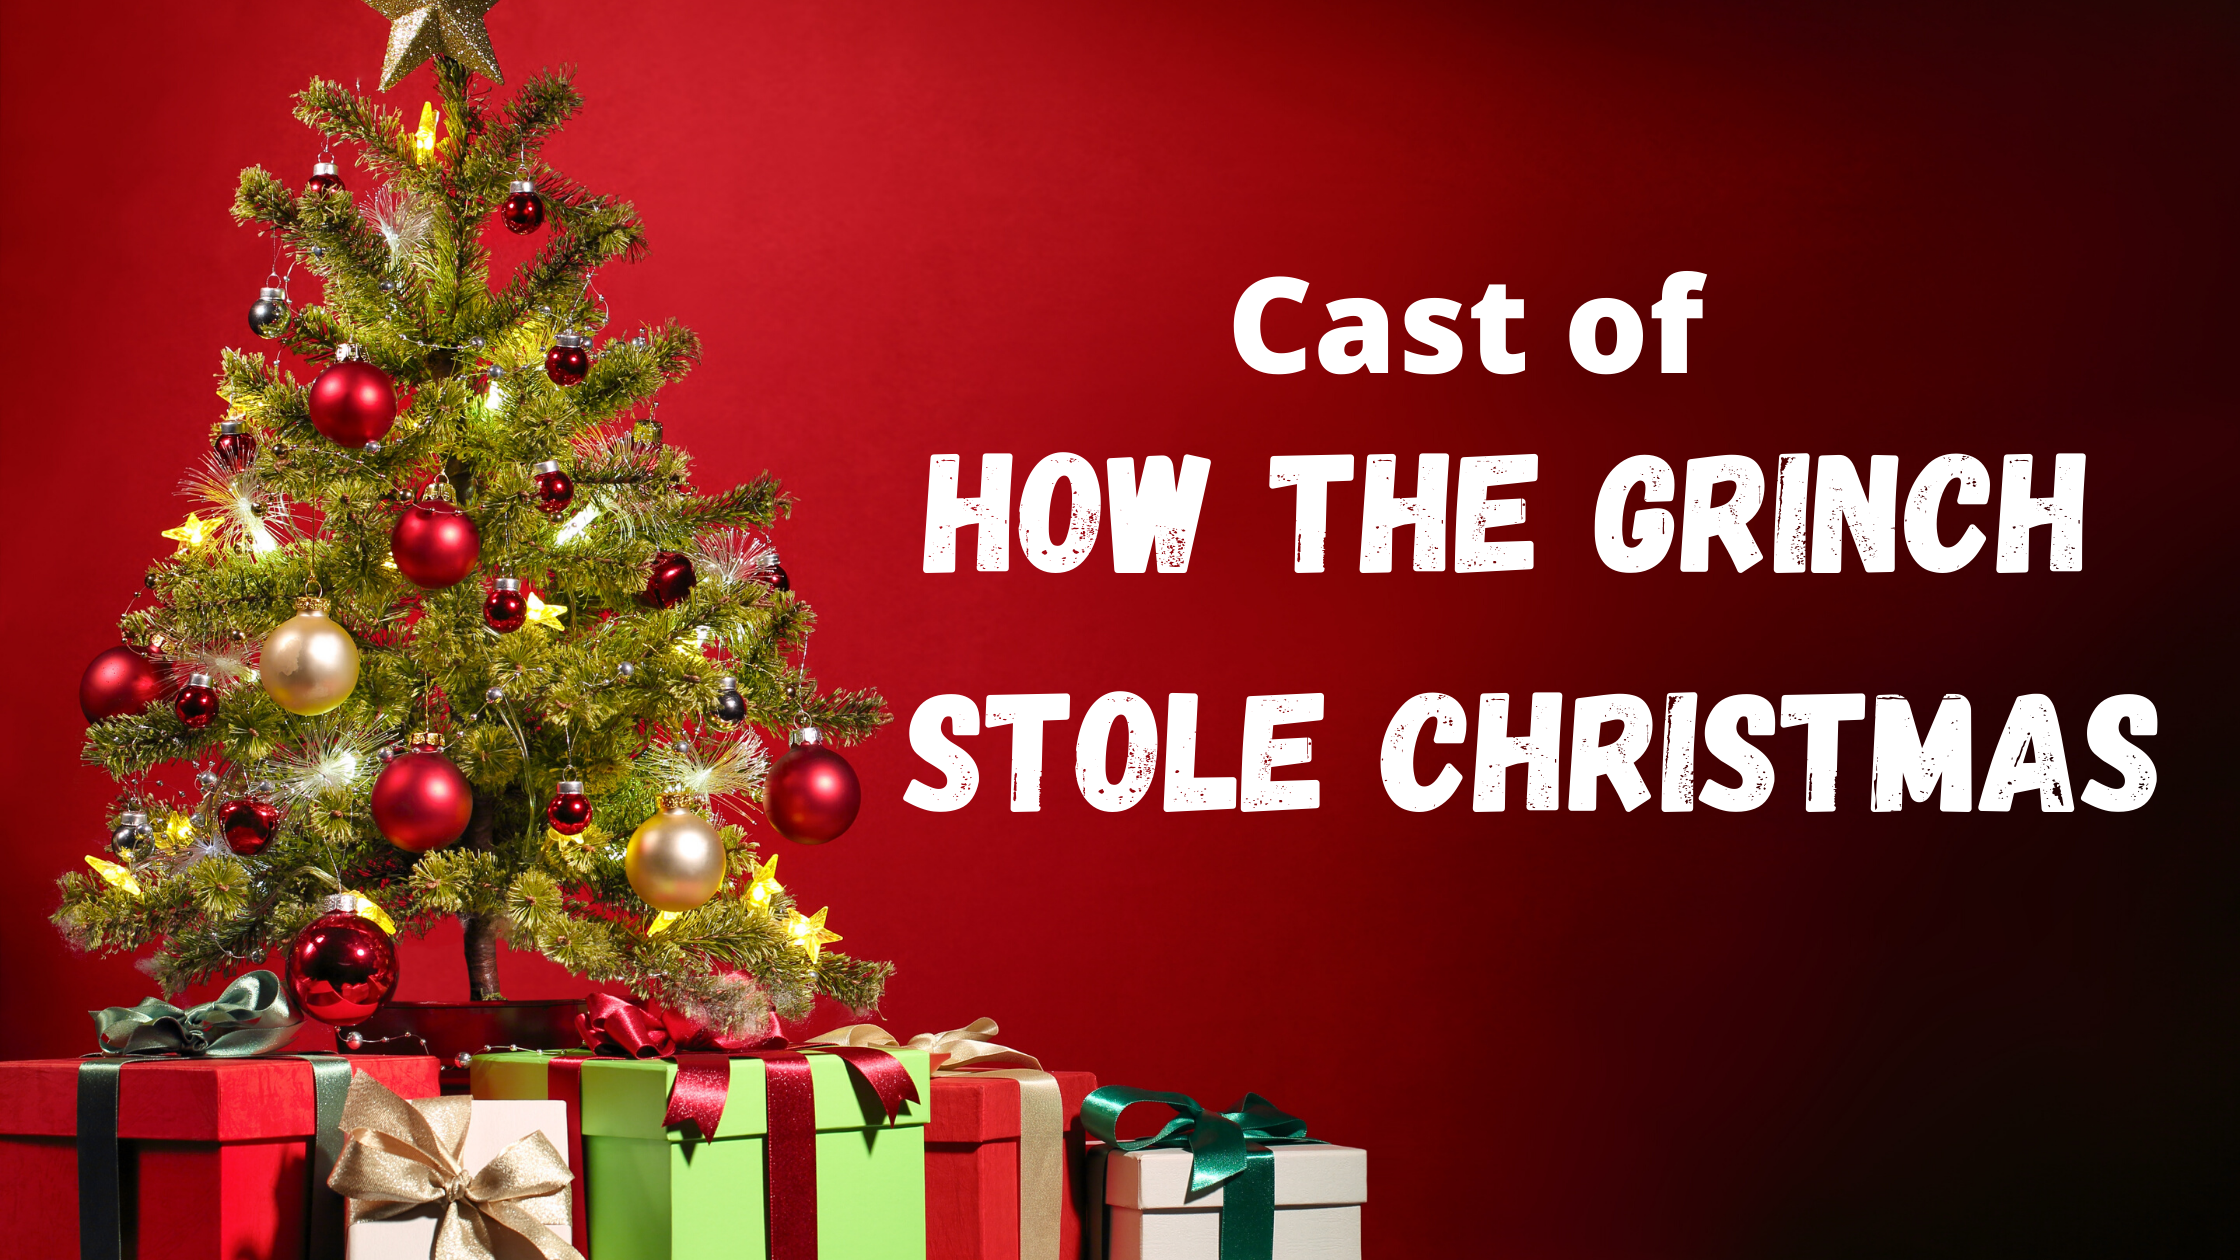 Cast of How the Grinch Stole Christmas